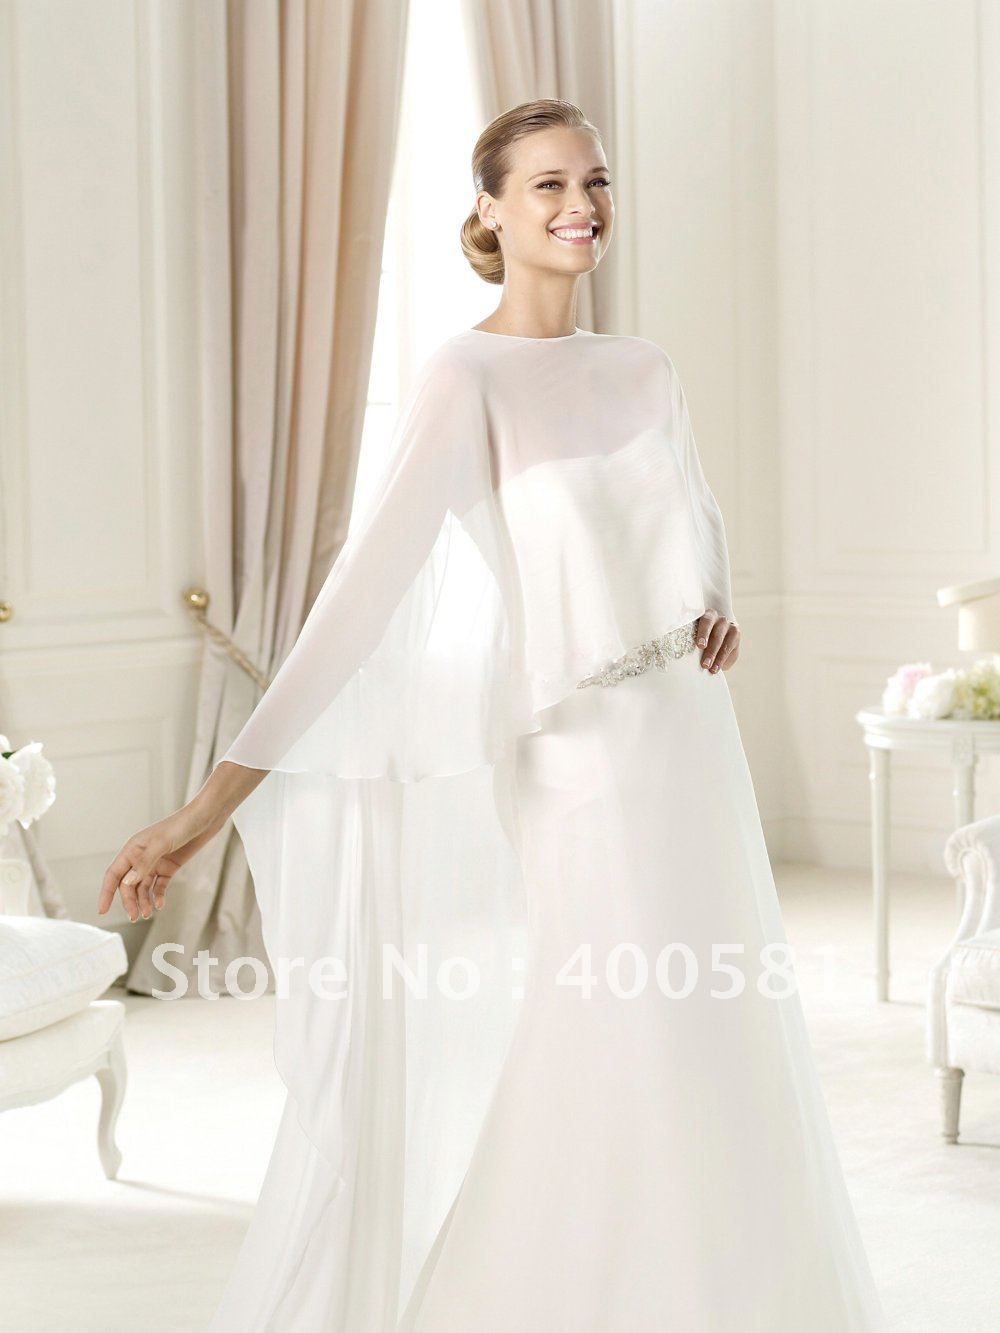 cape bridal dresses - Google Search | Wedding Dress Inspiration ...